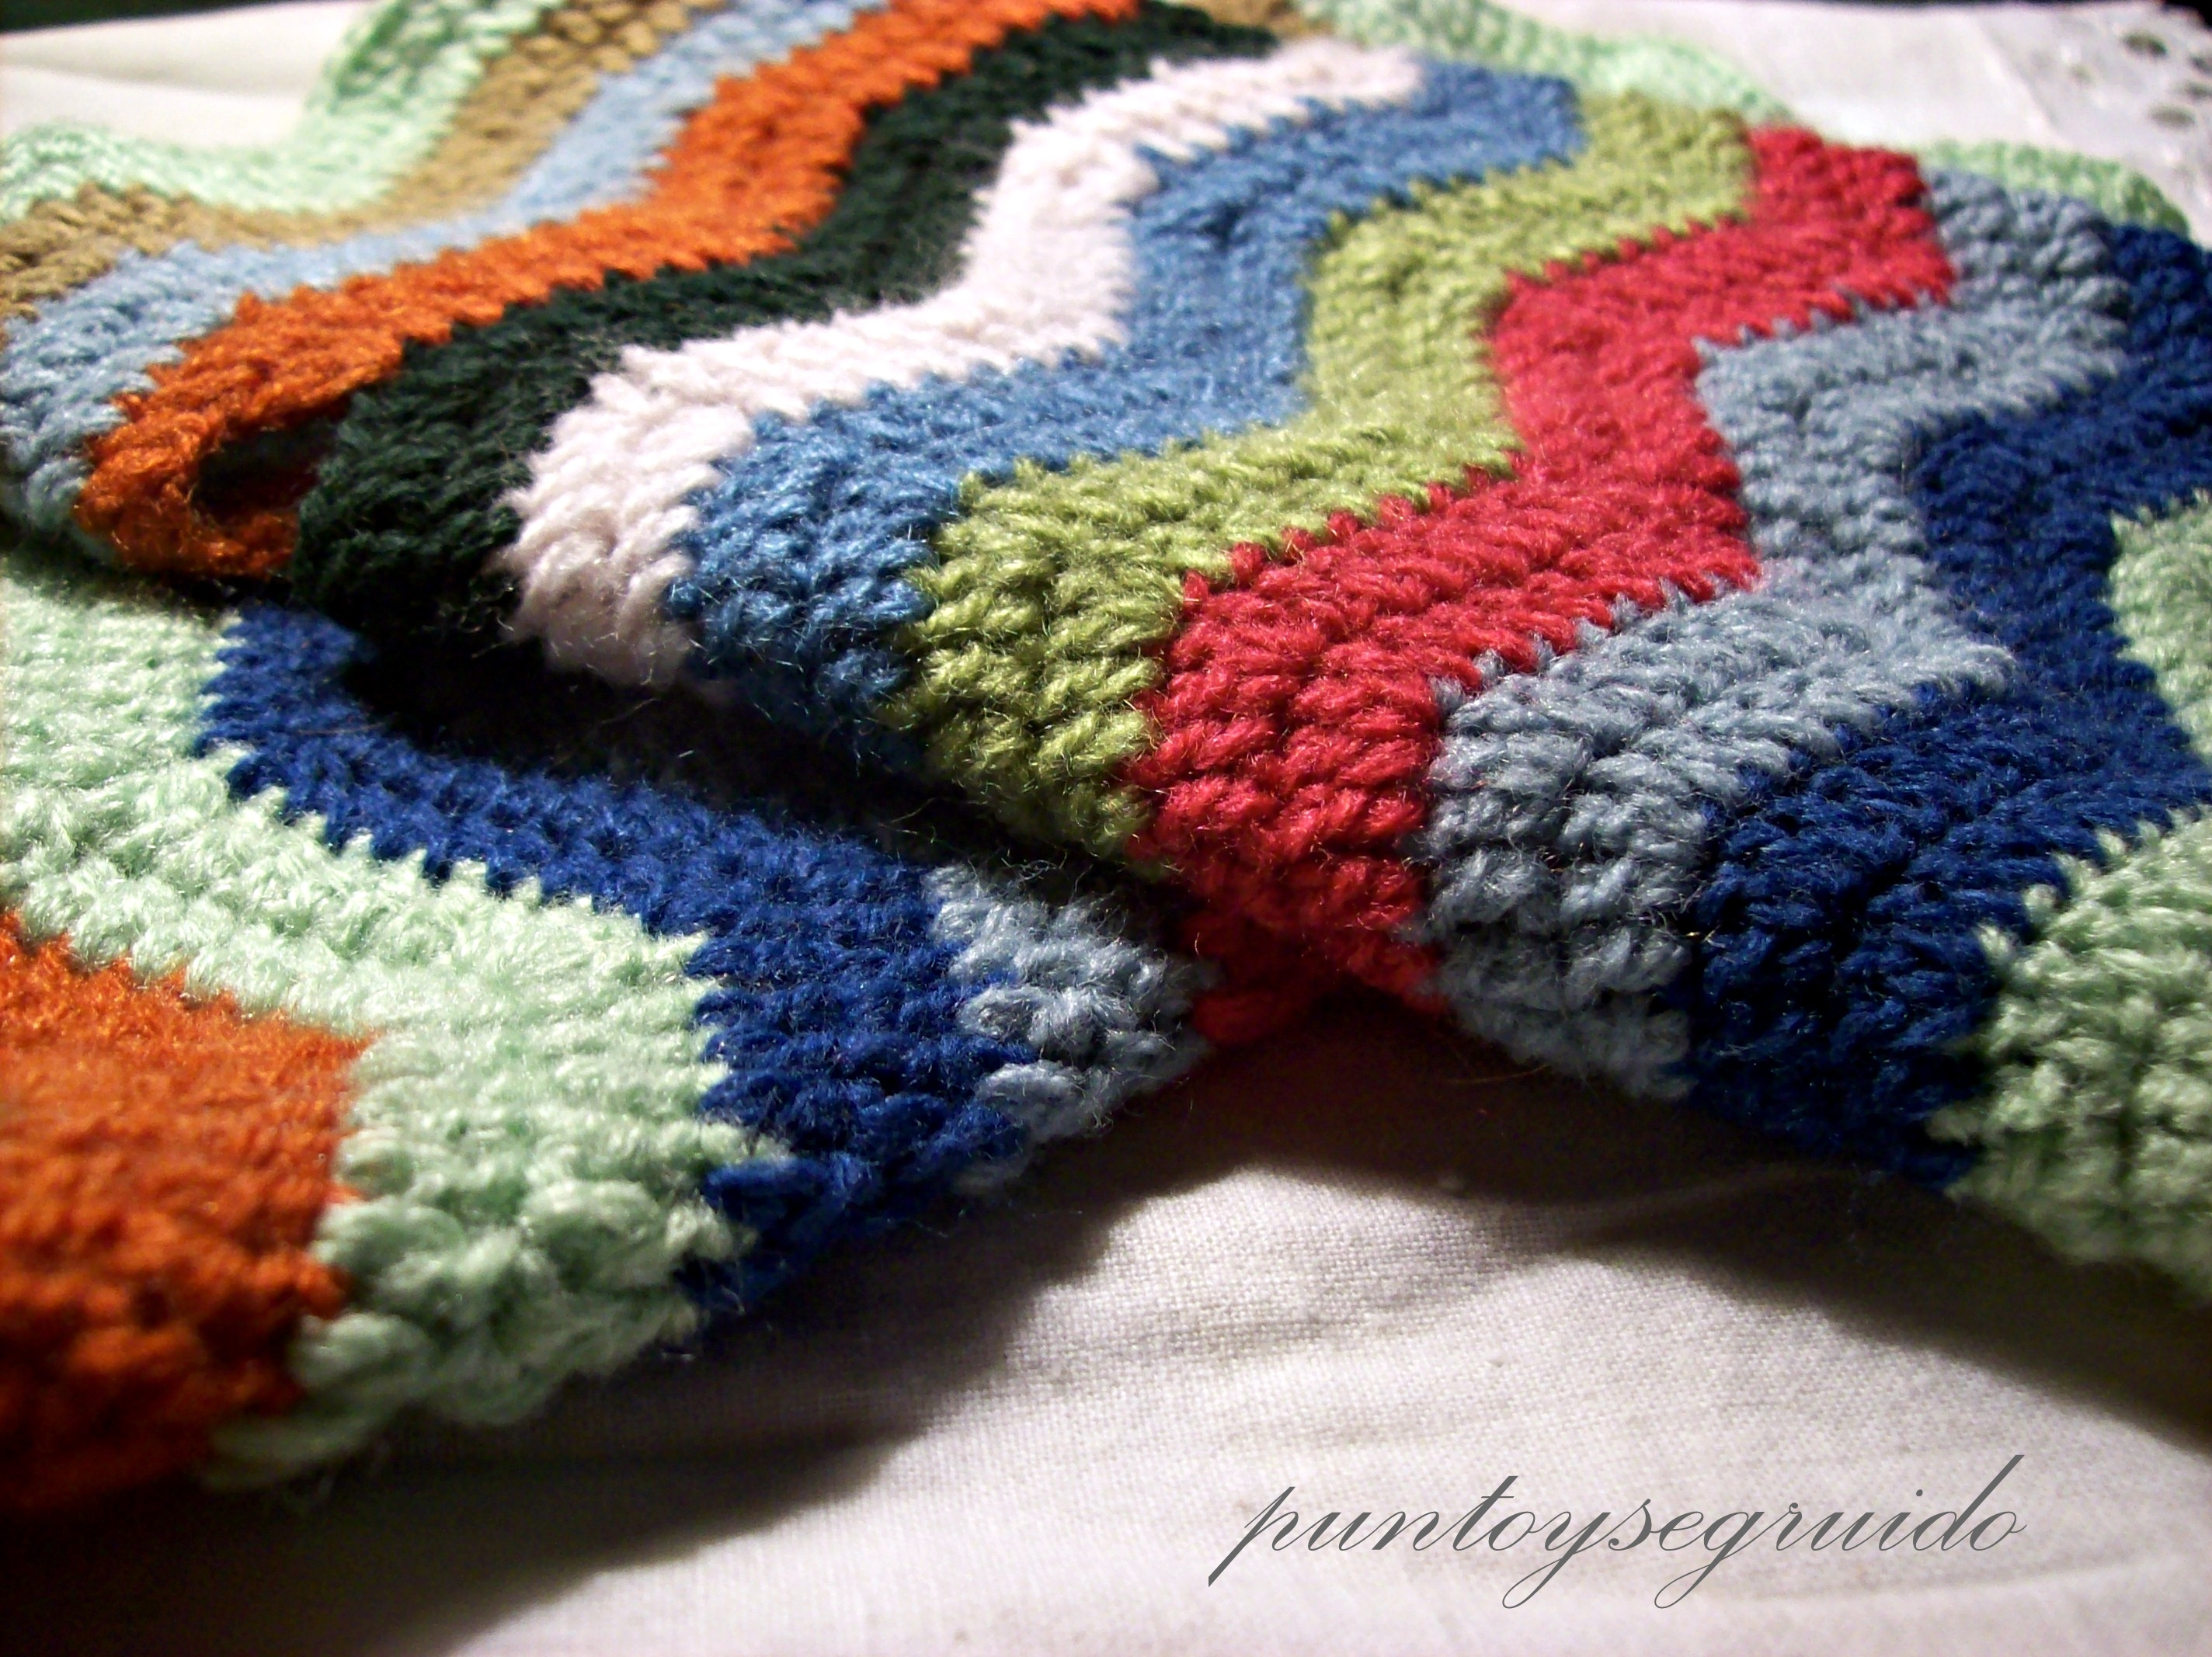 Crochet Patterns Zigzag : FREE CROCHET ZIG ZAG PATTERN - Crochet - Learn How to Crochet